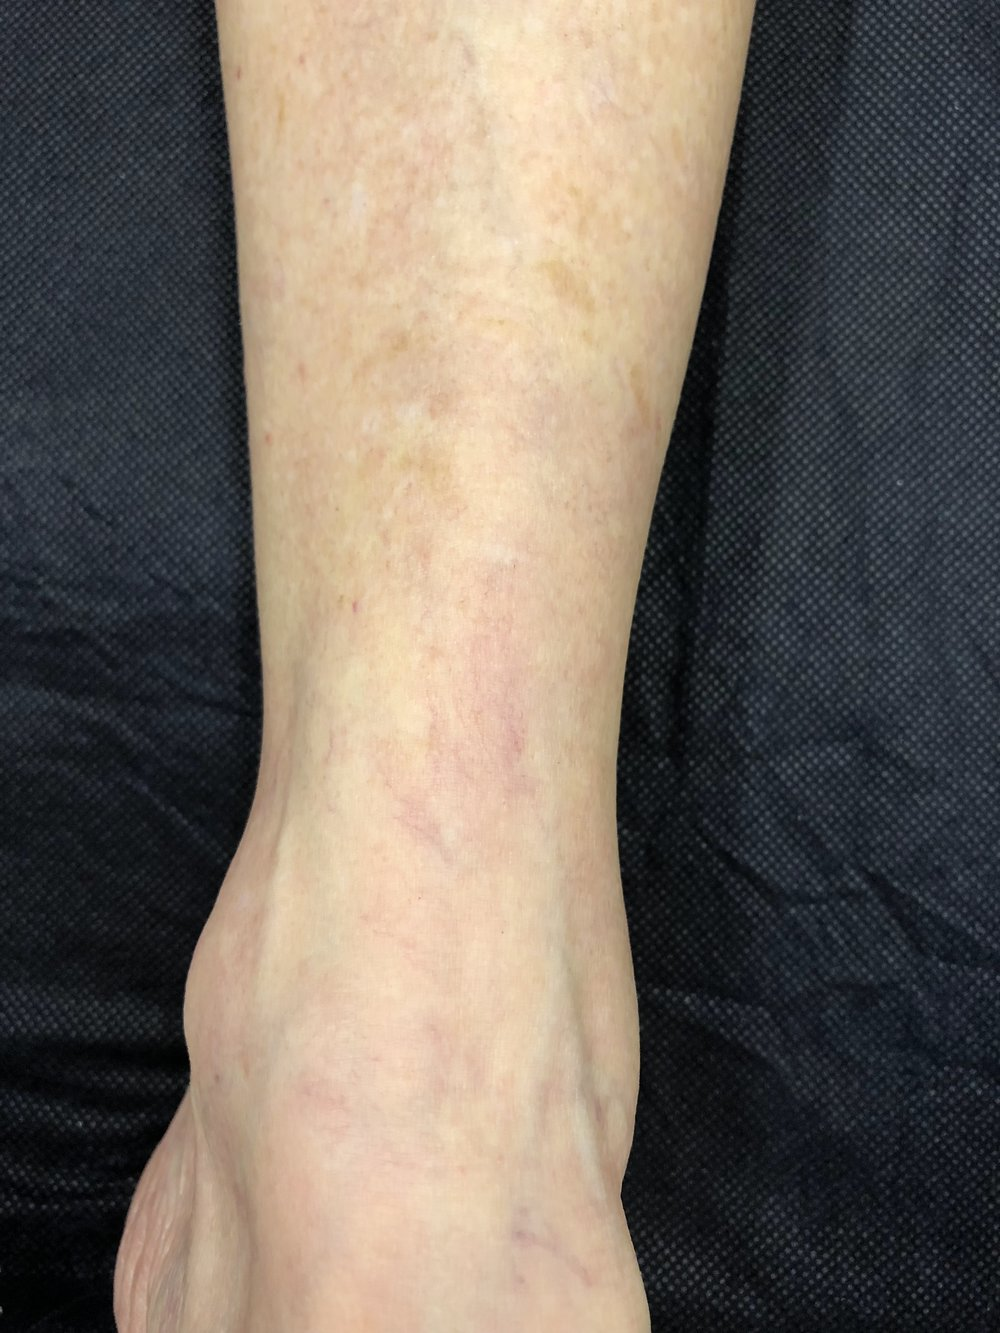 After - 3 months. Sclerotherapy 2 treatments